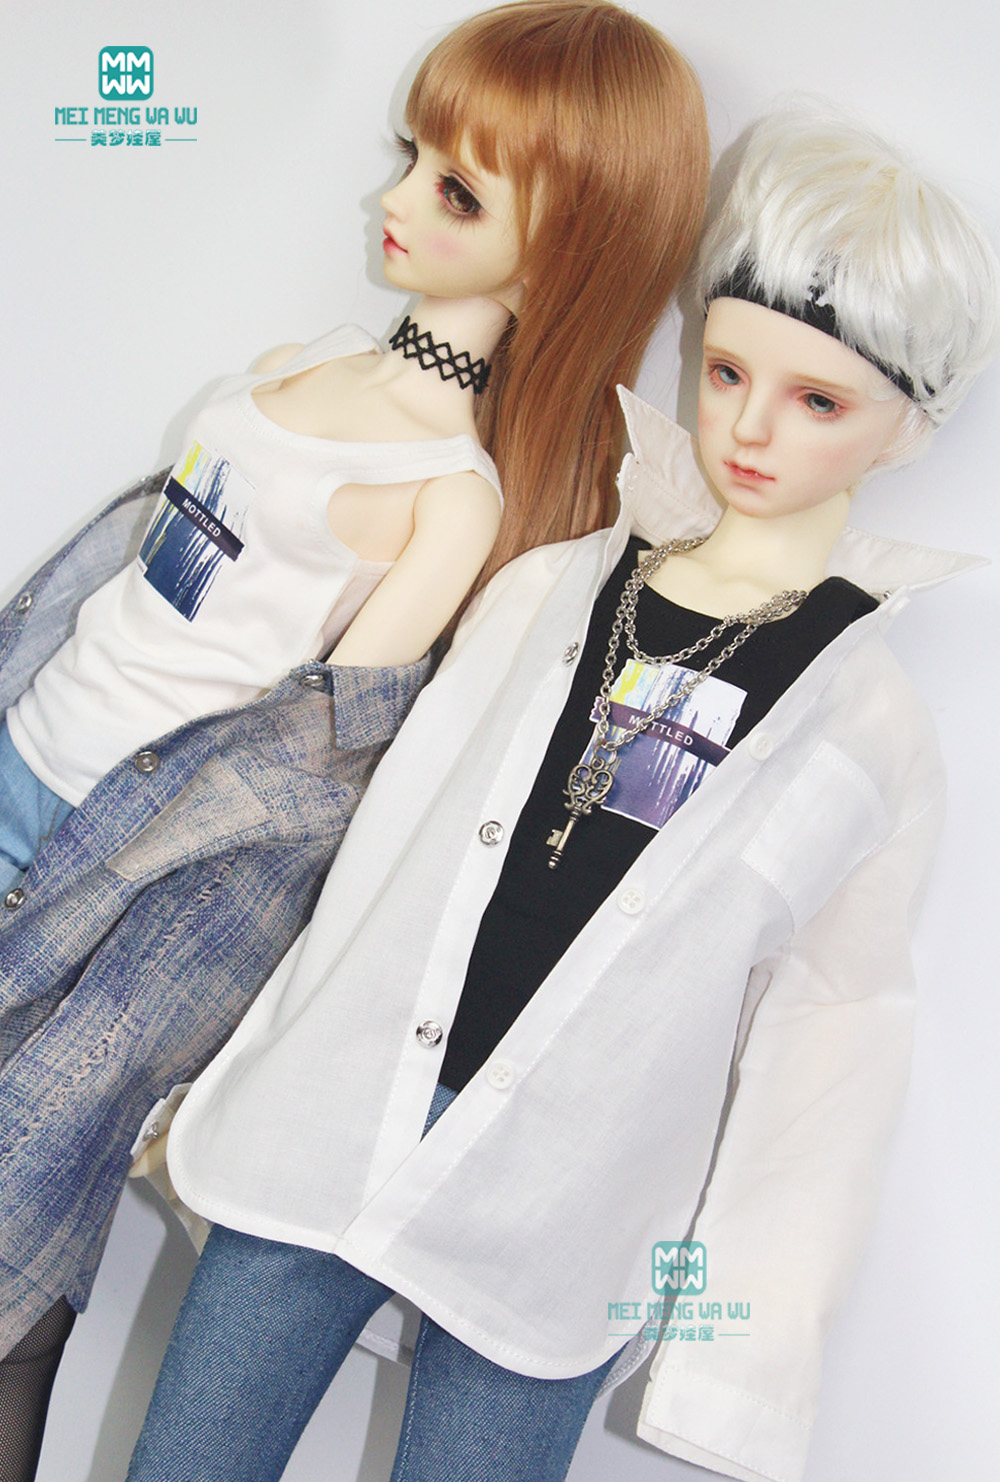 BJD Accessories Doll Clothes For 1/3 BJD DD Doll Fashion Fashion Boyfriend Shirt, Vest